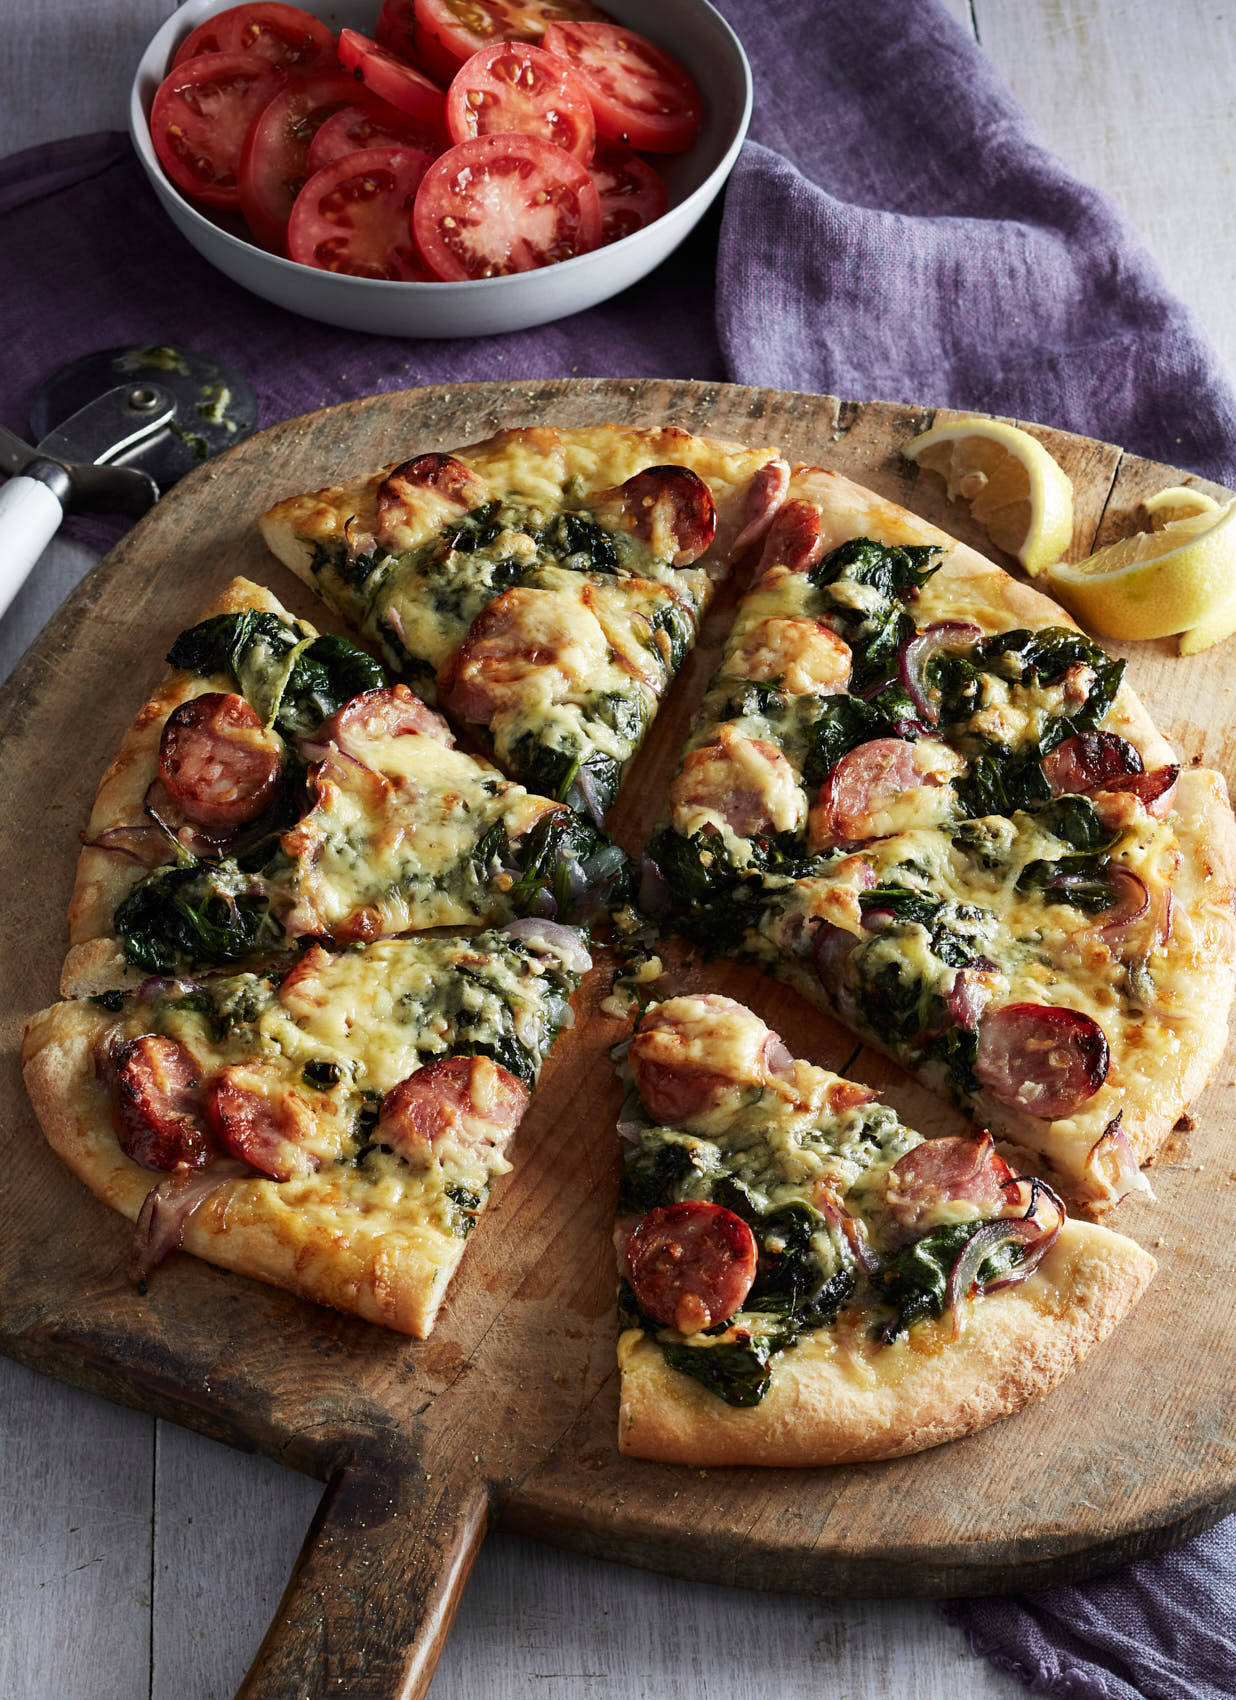 apple-sausage-and-spinach-pizza-16931-w